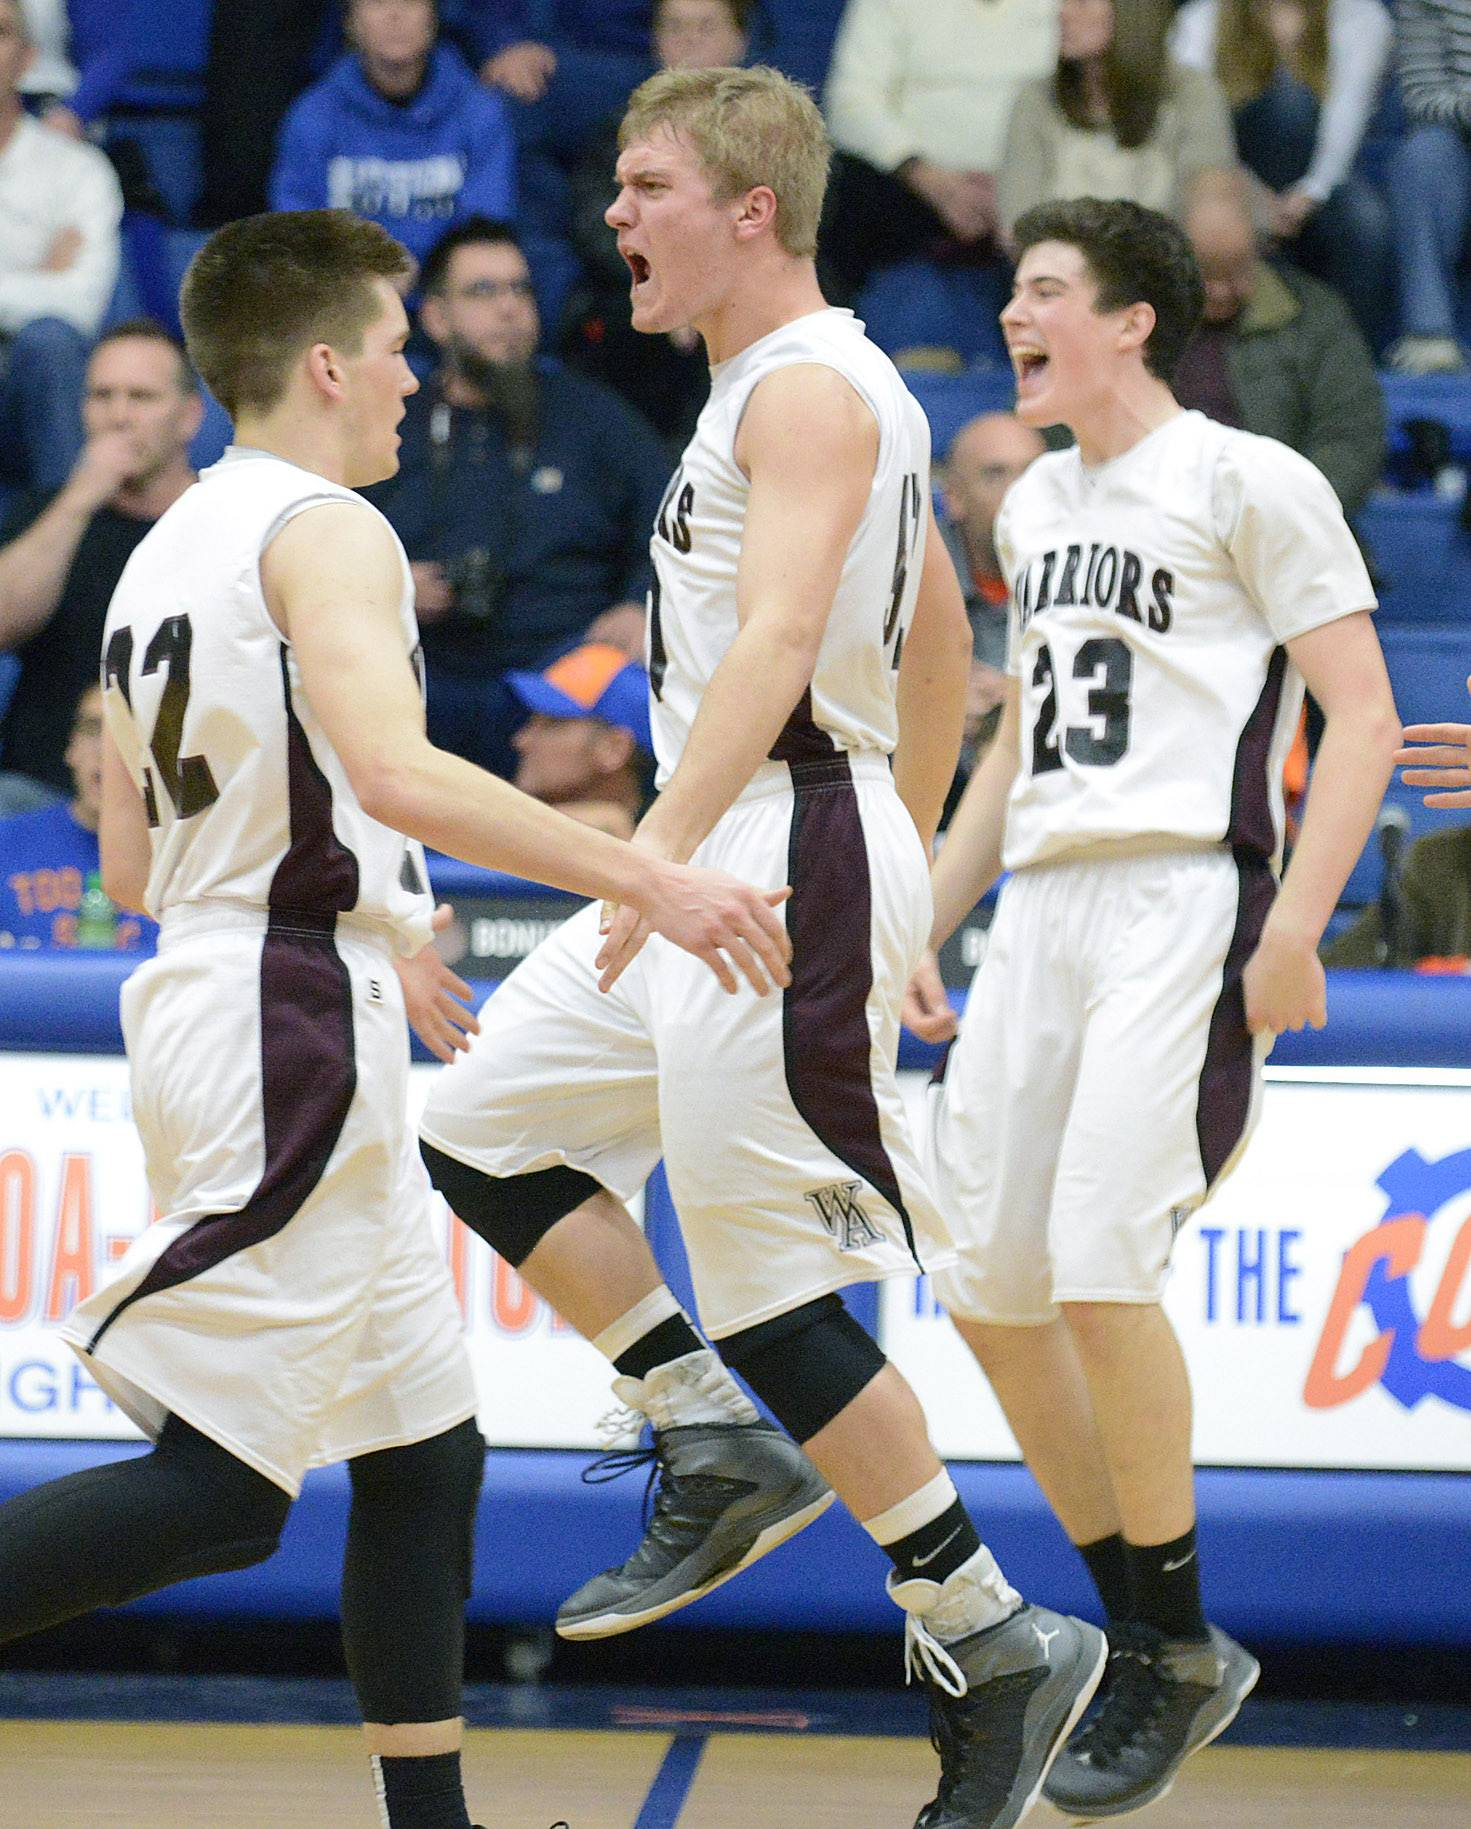 Wheaton Academy's Jacob Lindstedt leaps with excitement onto the court as a time out is called after the Warriors scored to take the lead in the fourth quarter of the Class 3A regional at Genoa-Kingston High School in Genoa on Wednesday.